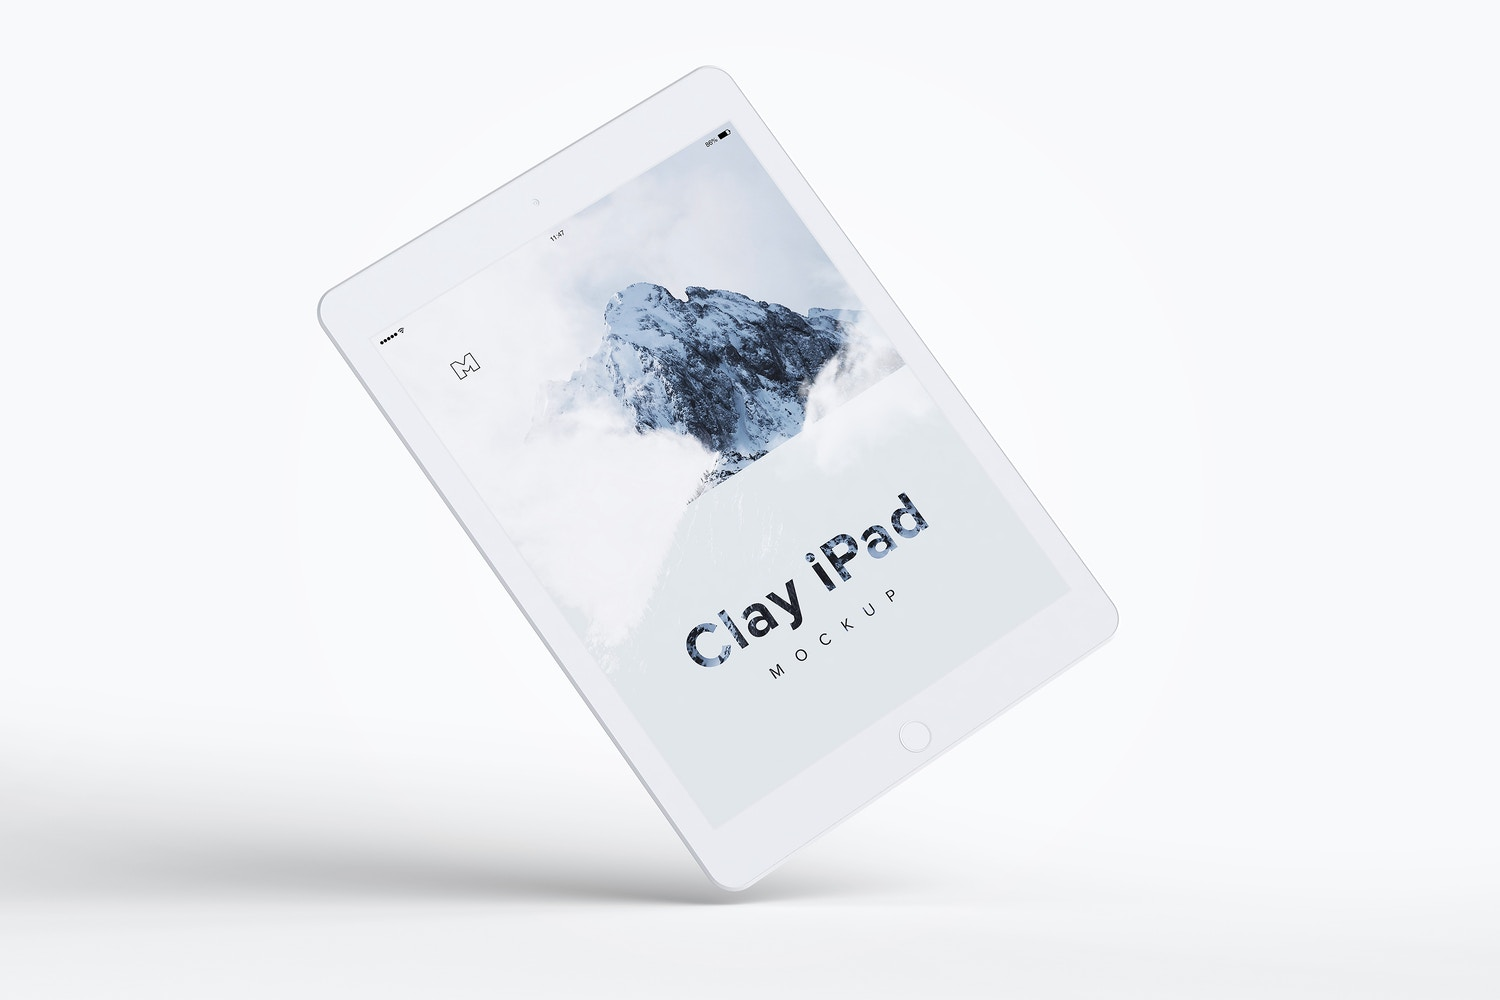 Clay iPad 9.7 Mockup 06 by Original Mockups on Original Mockups